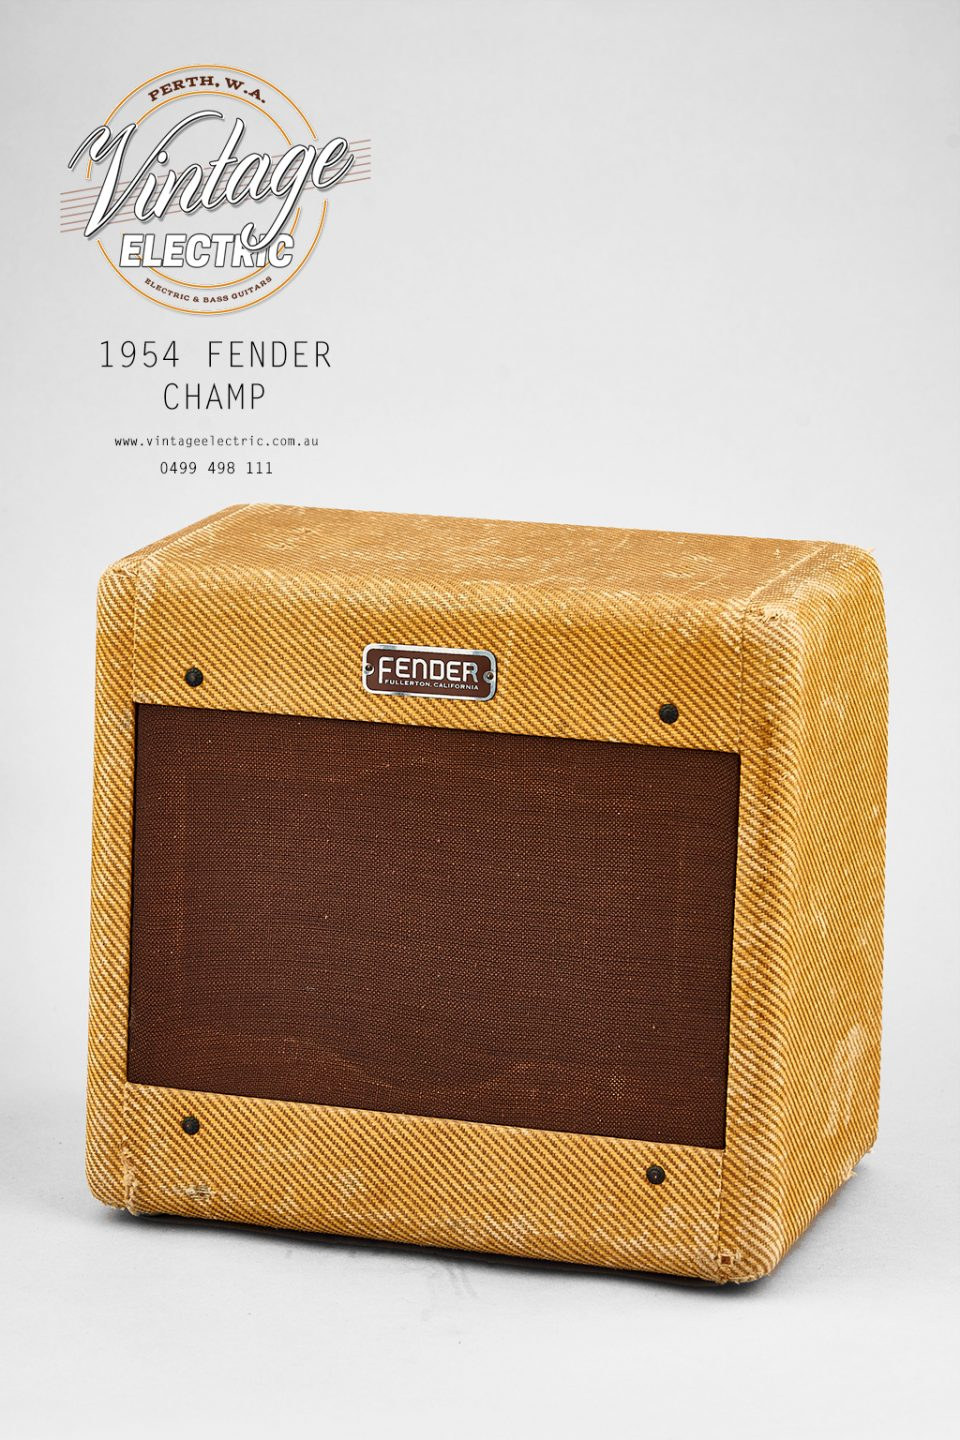 1954 Fender Champ USA